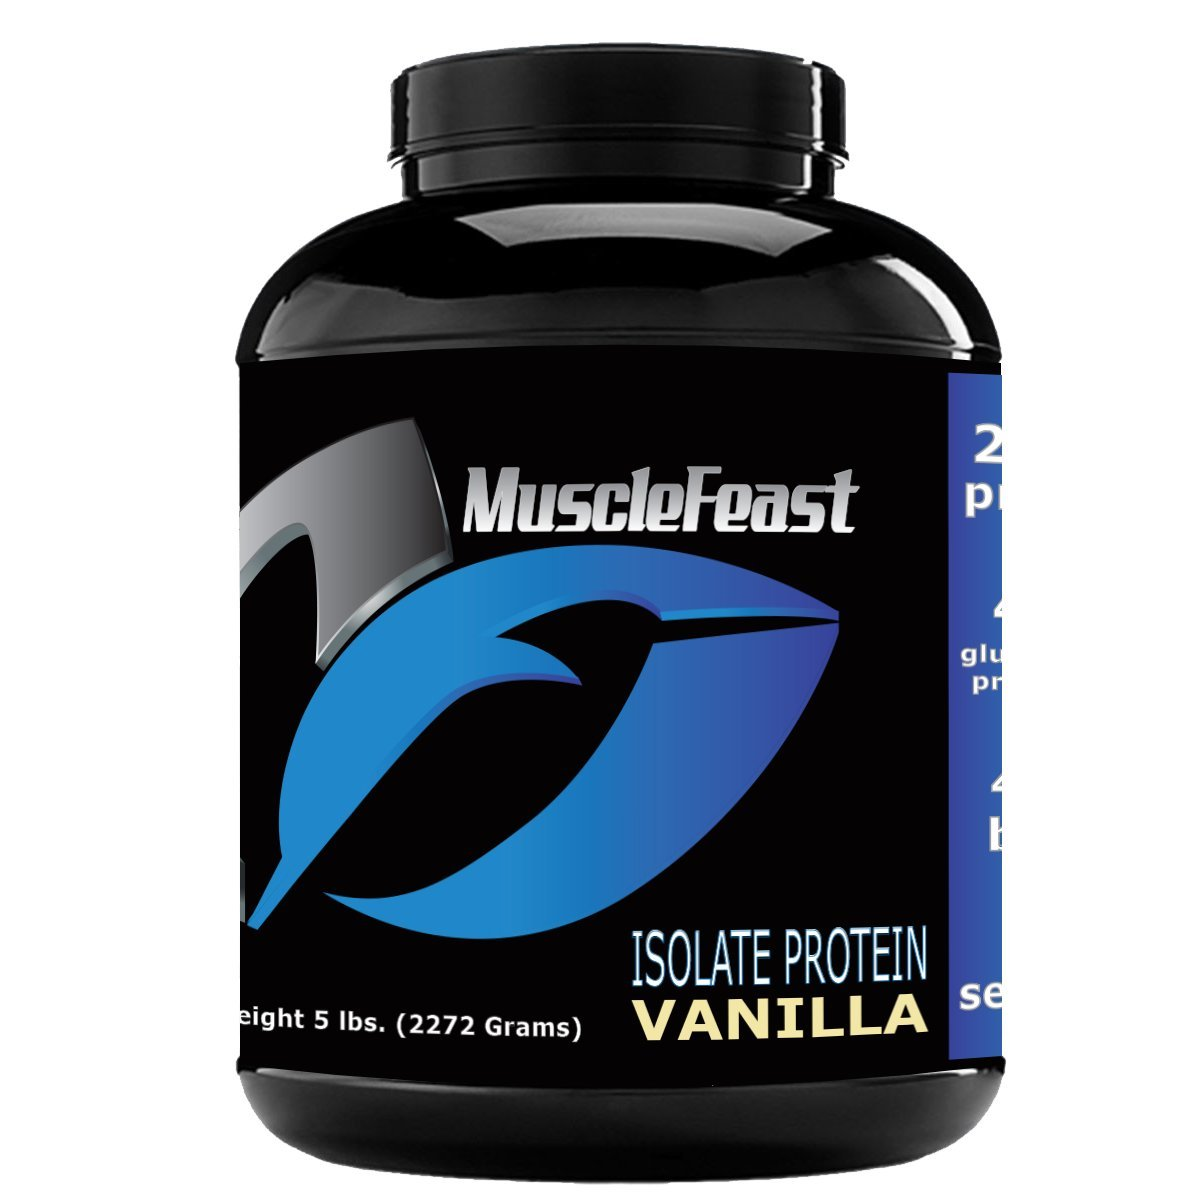 Grass Fed Whey Protein Isolate - by Muscle Feast   All Natural, Lactose Free and Hormone Free   NO Soy, Gluten or GMOs   4.7g of BCAA's Per Serving (5lb, Vanilla)